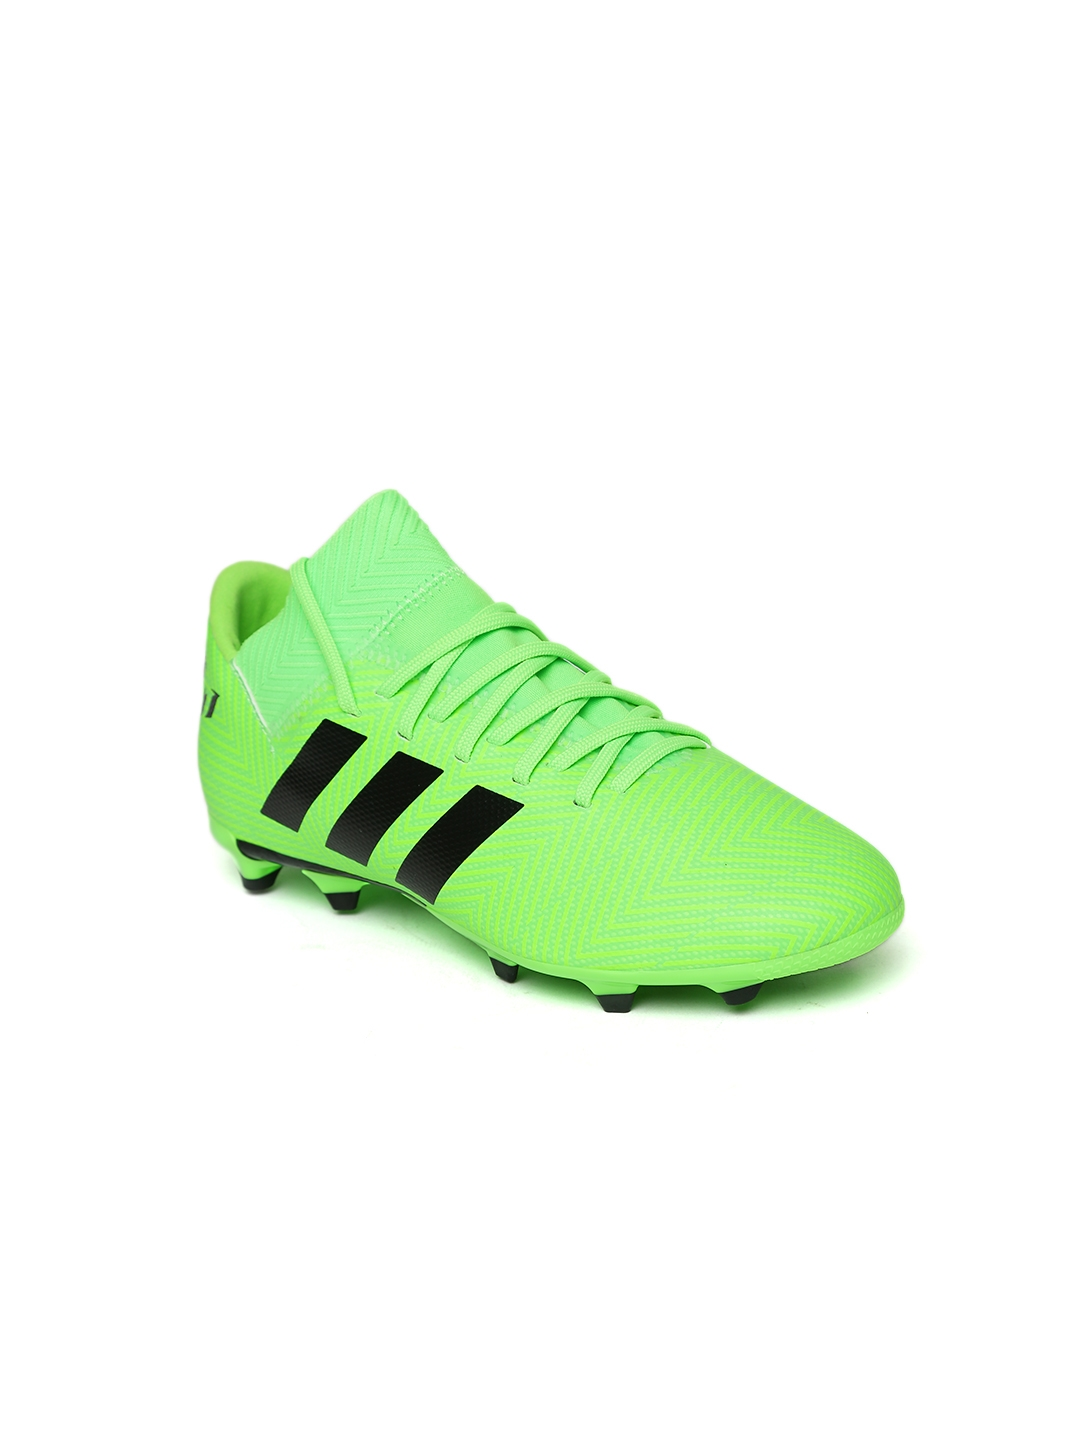 65d9155dc651 Buy ADIDAS Boys Green Nemeziz Messi 18.3 Firm Ground Football Shoes ...